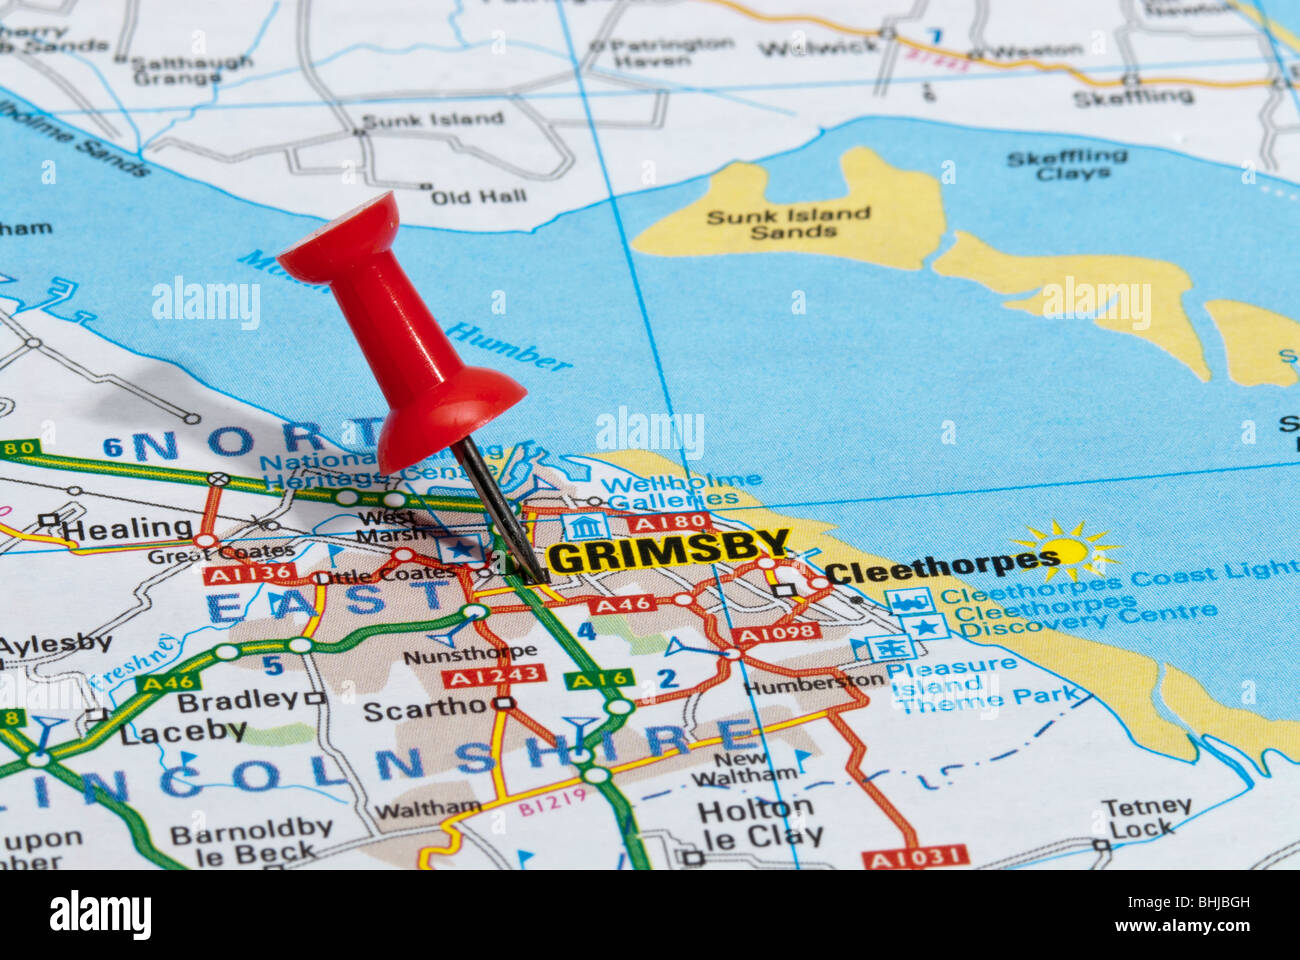 red map pin in road map pointing to city of Grimsby Stock Photo